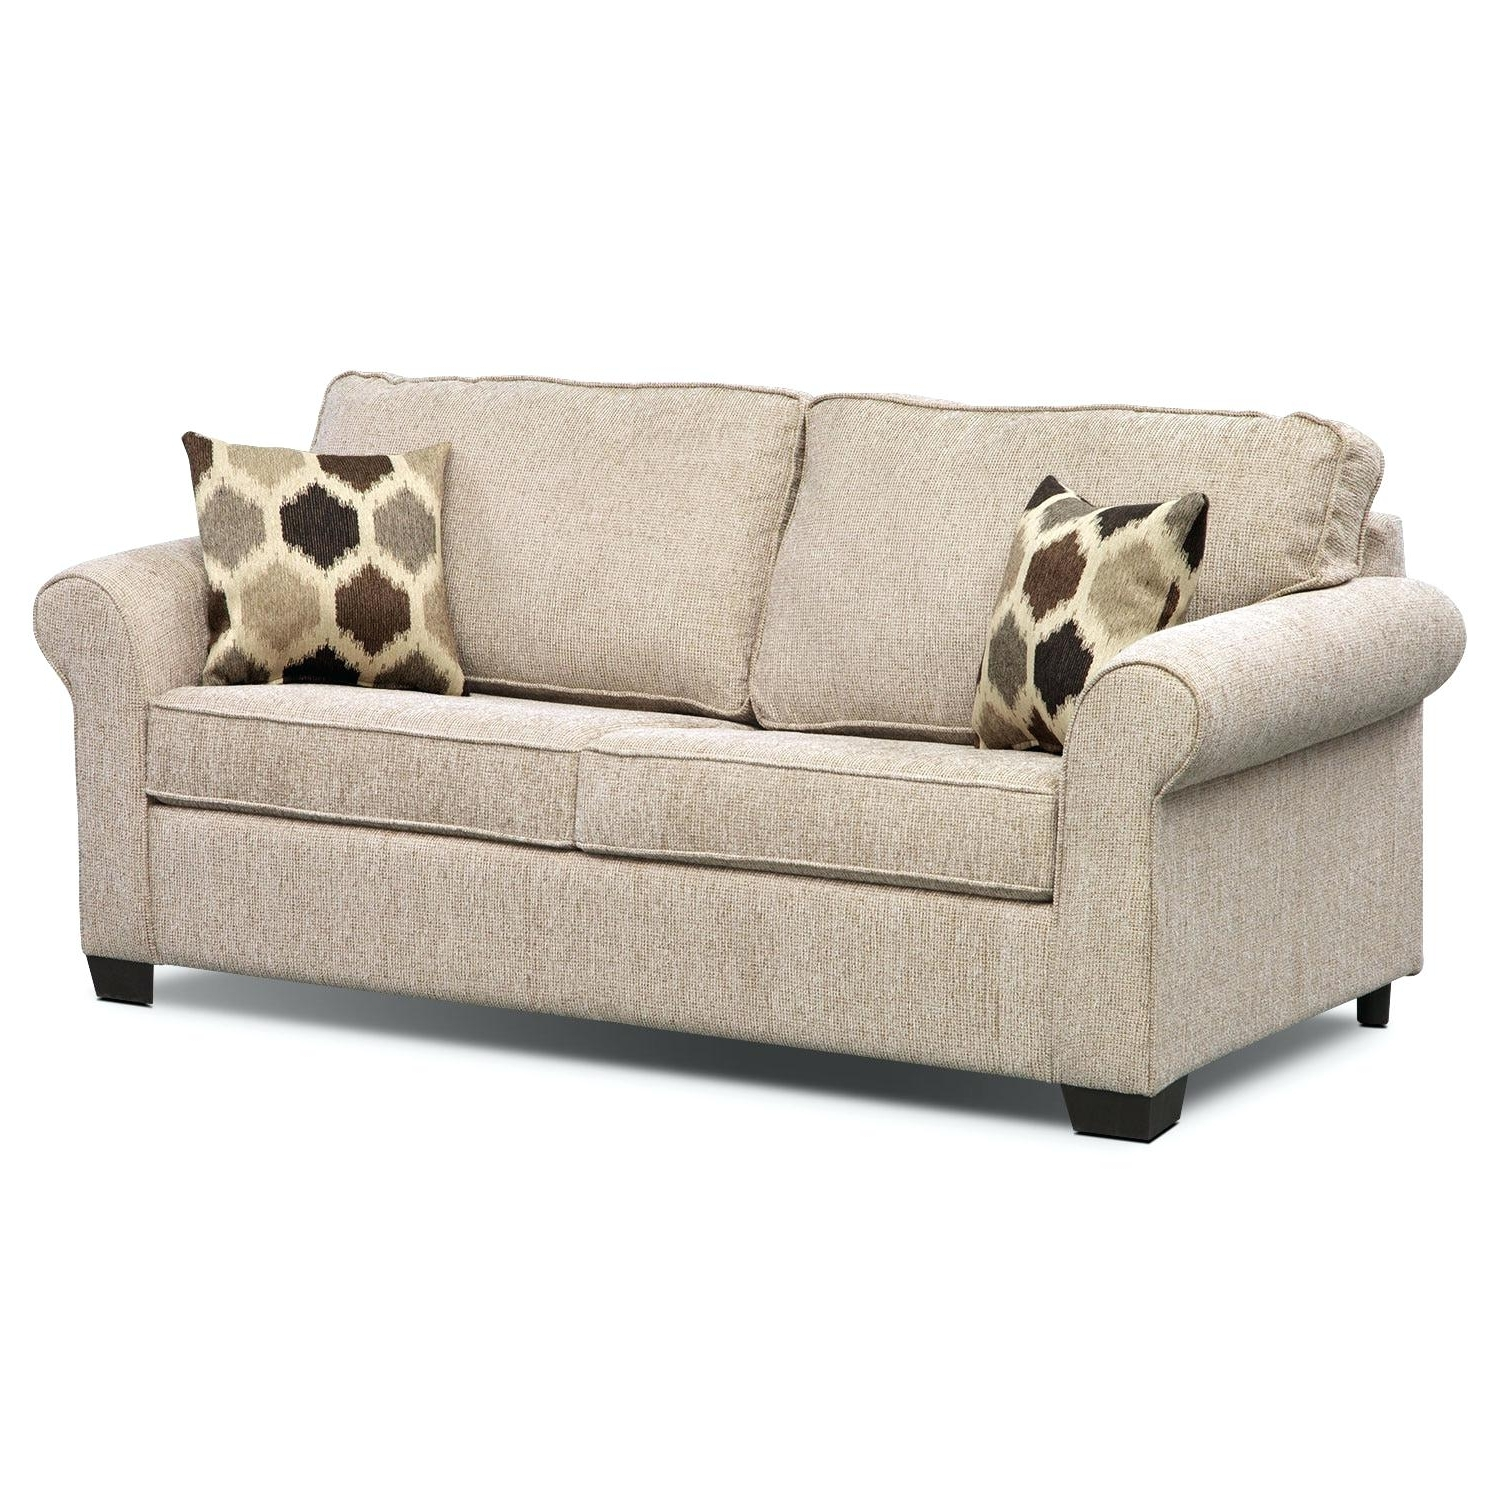 Well Known Panama City Fl Sectional Sofas With Regard To Value City Sleeper Sofa Medium Size Of Sectional Sofas Value City (View 20 of 20)